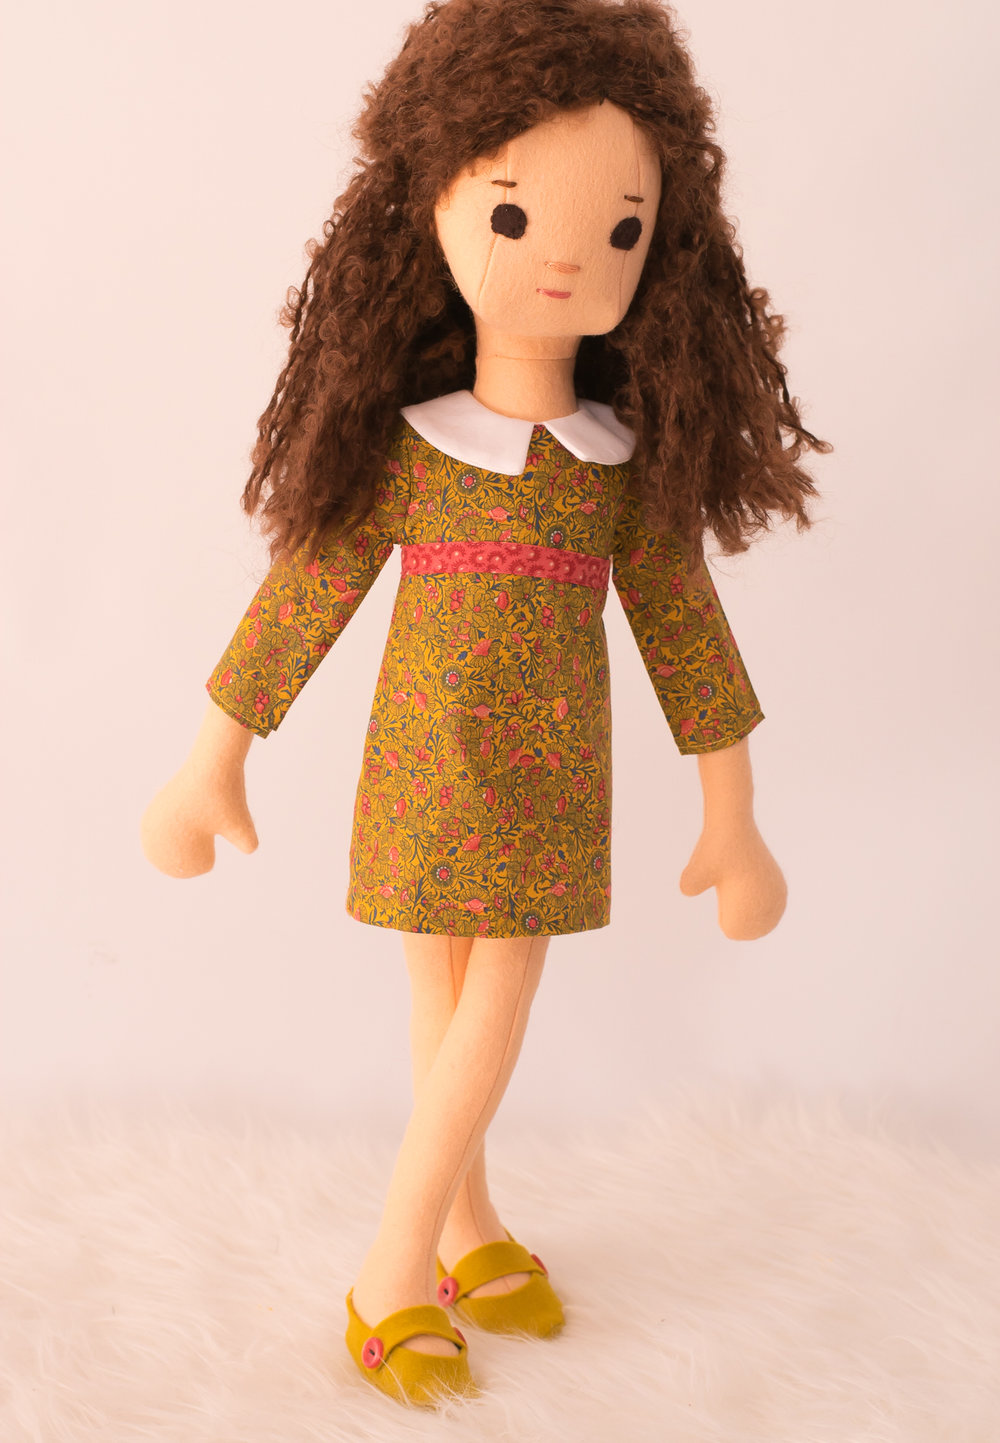 Gallery of Dolls-3.jpg